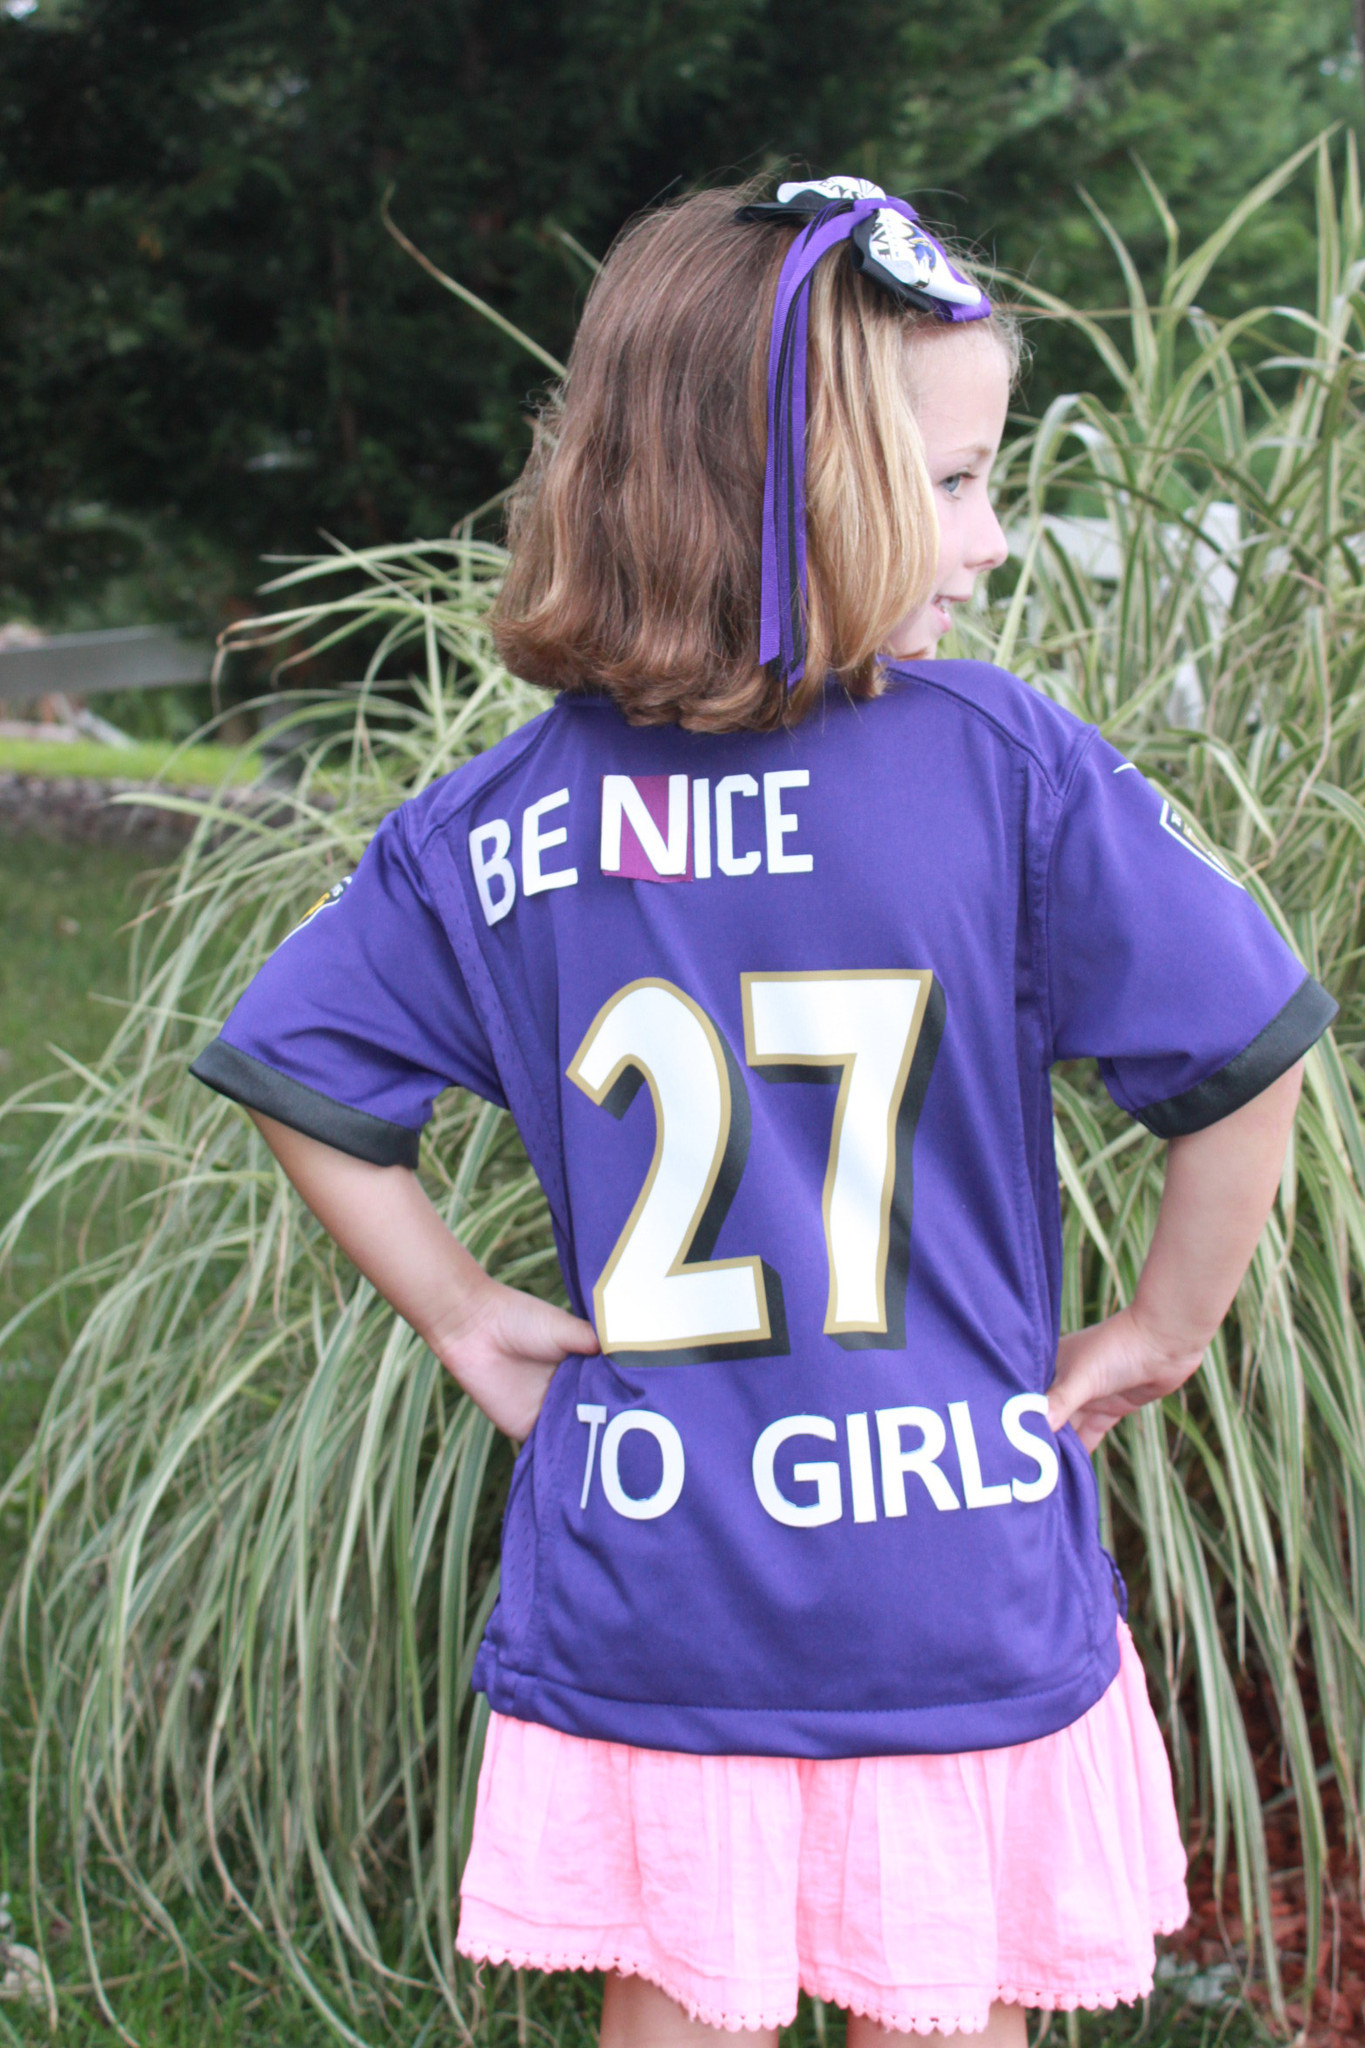 Ray Rice: Here's How One Baltimore Dad Fixed His Daughter's #27 ...